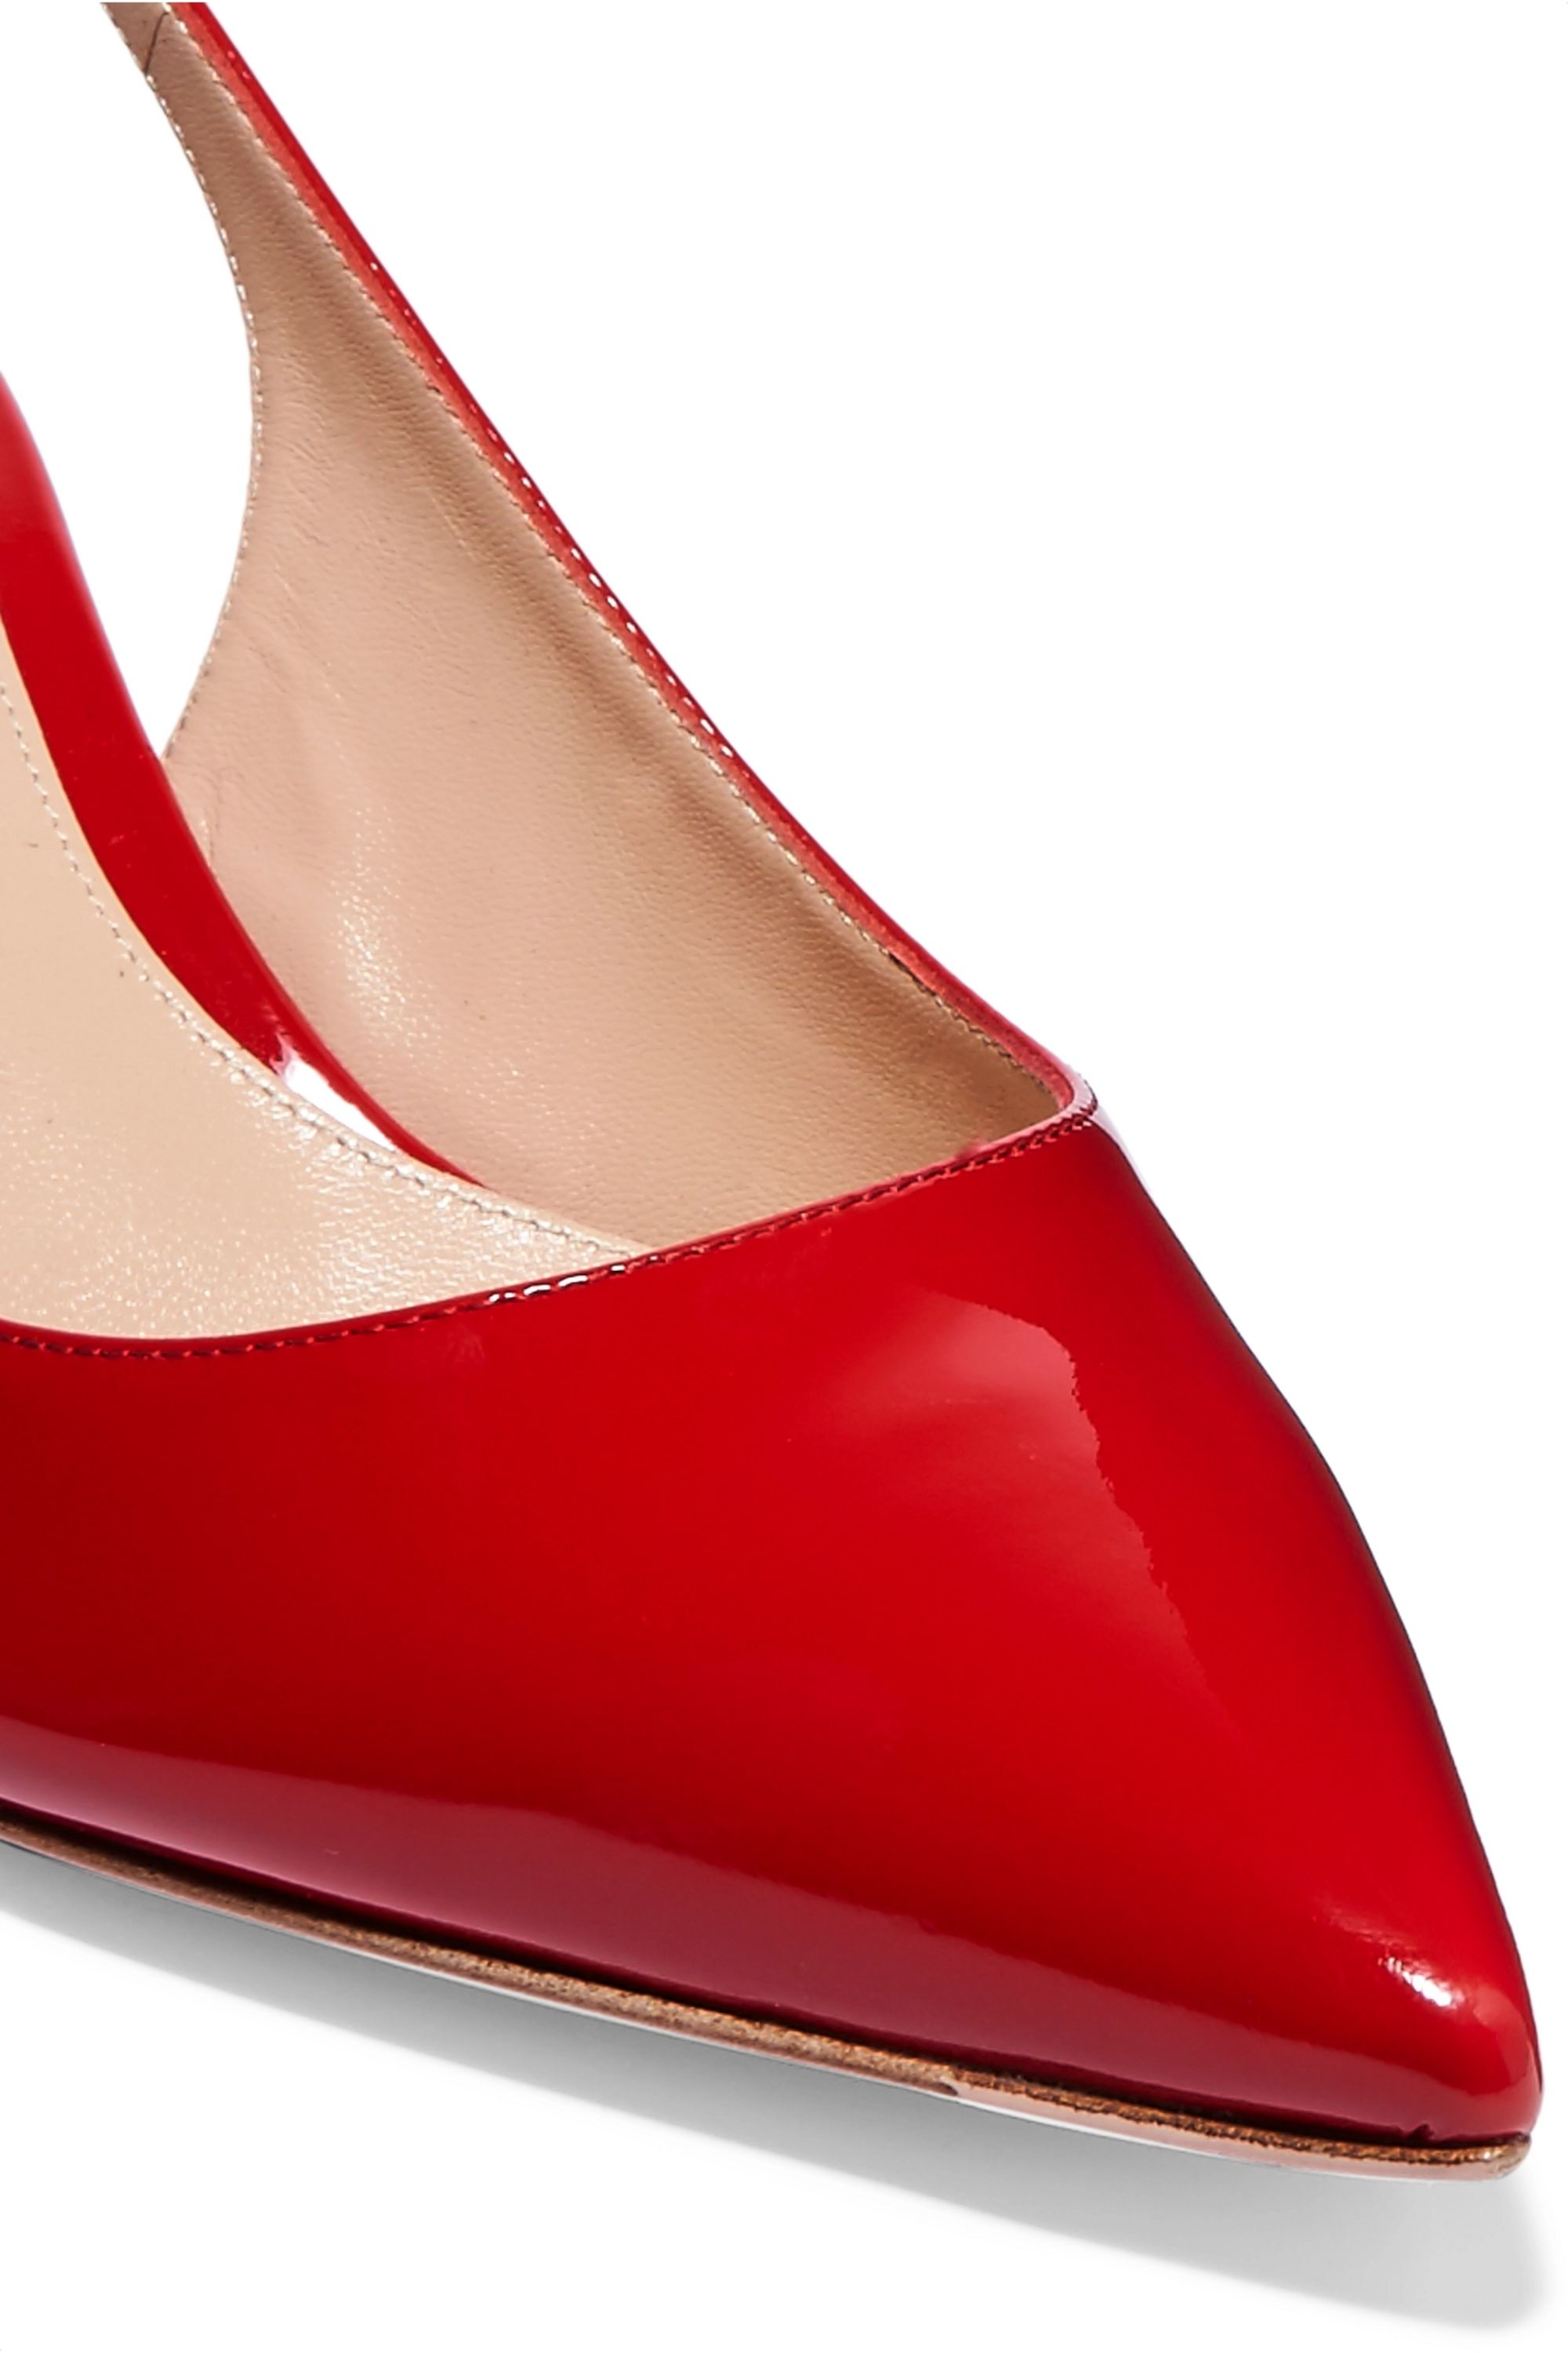 Gianvito Rossi 55 patent-leather slingback pumps